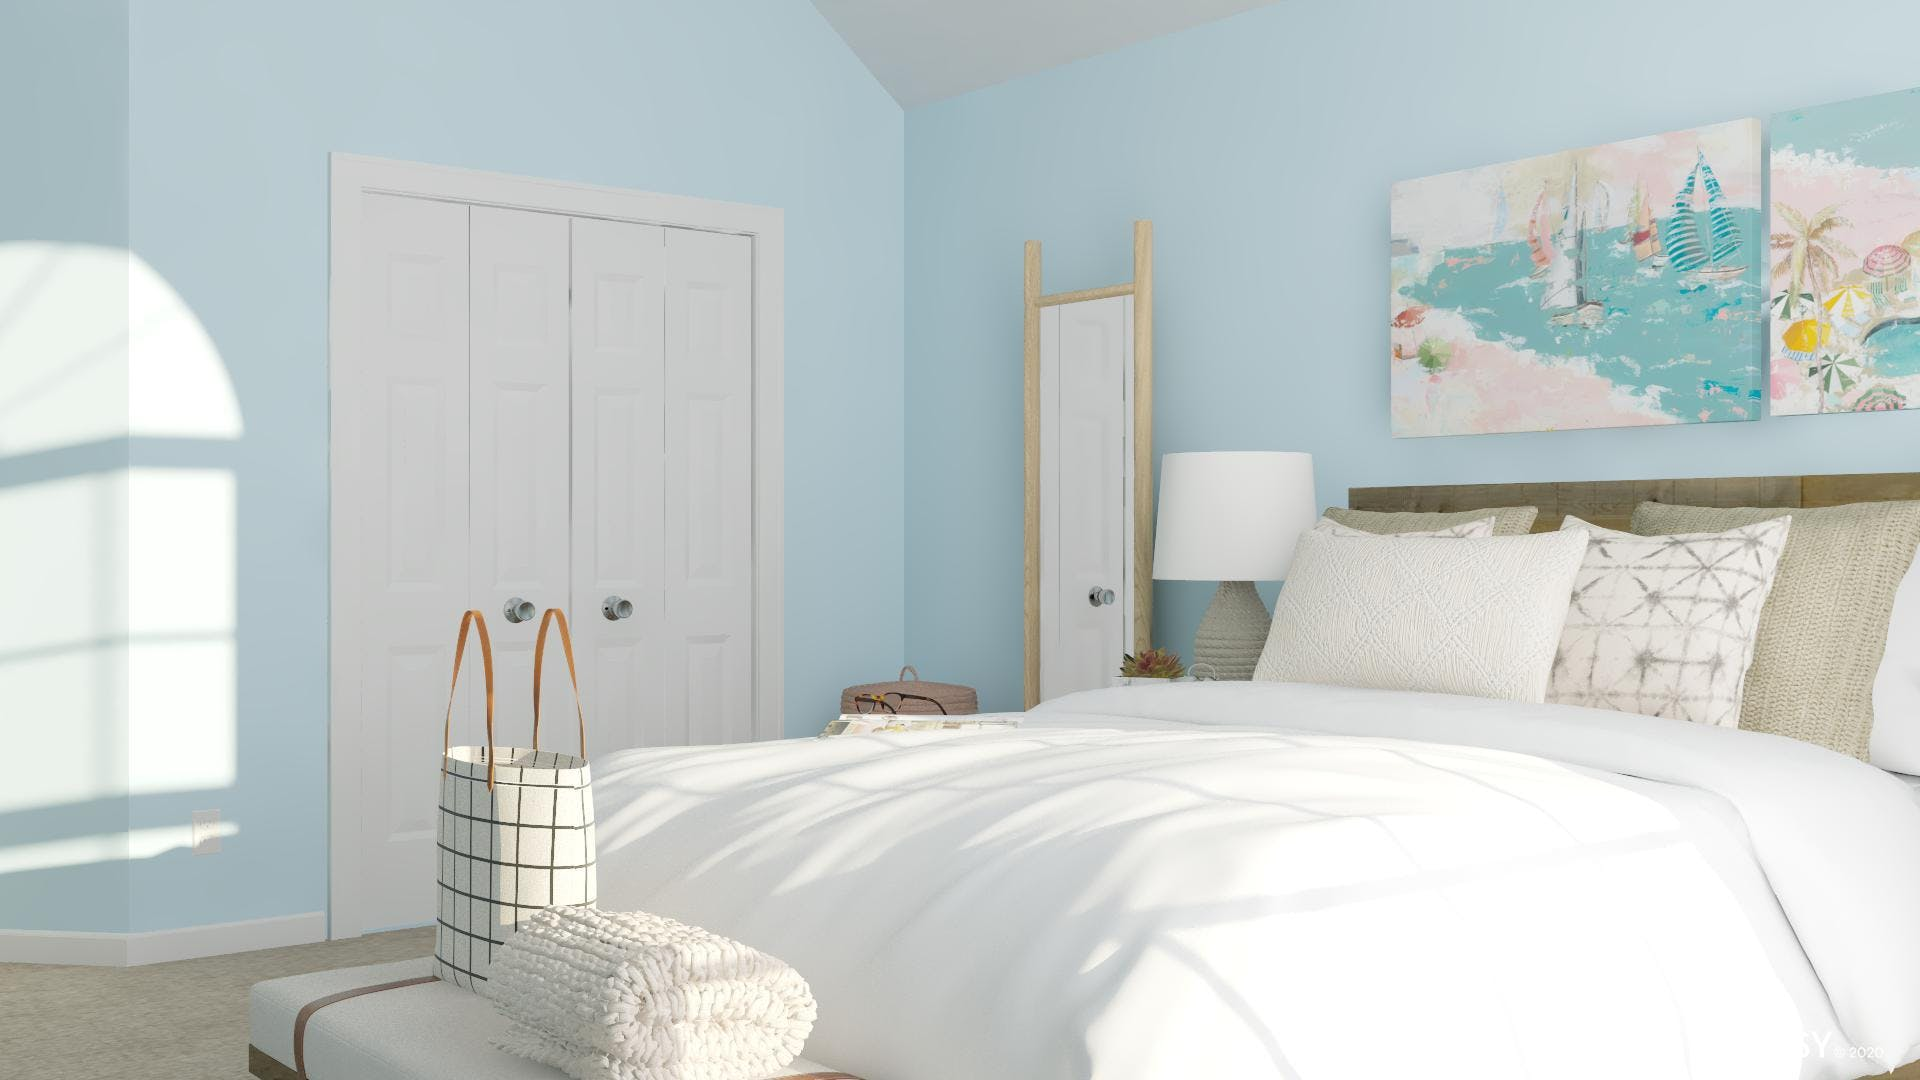 Simple Pastels Add Charm